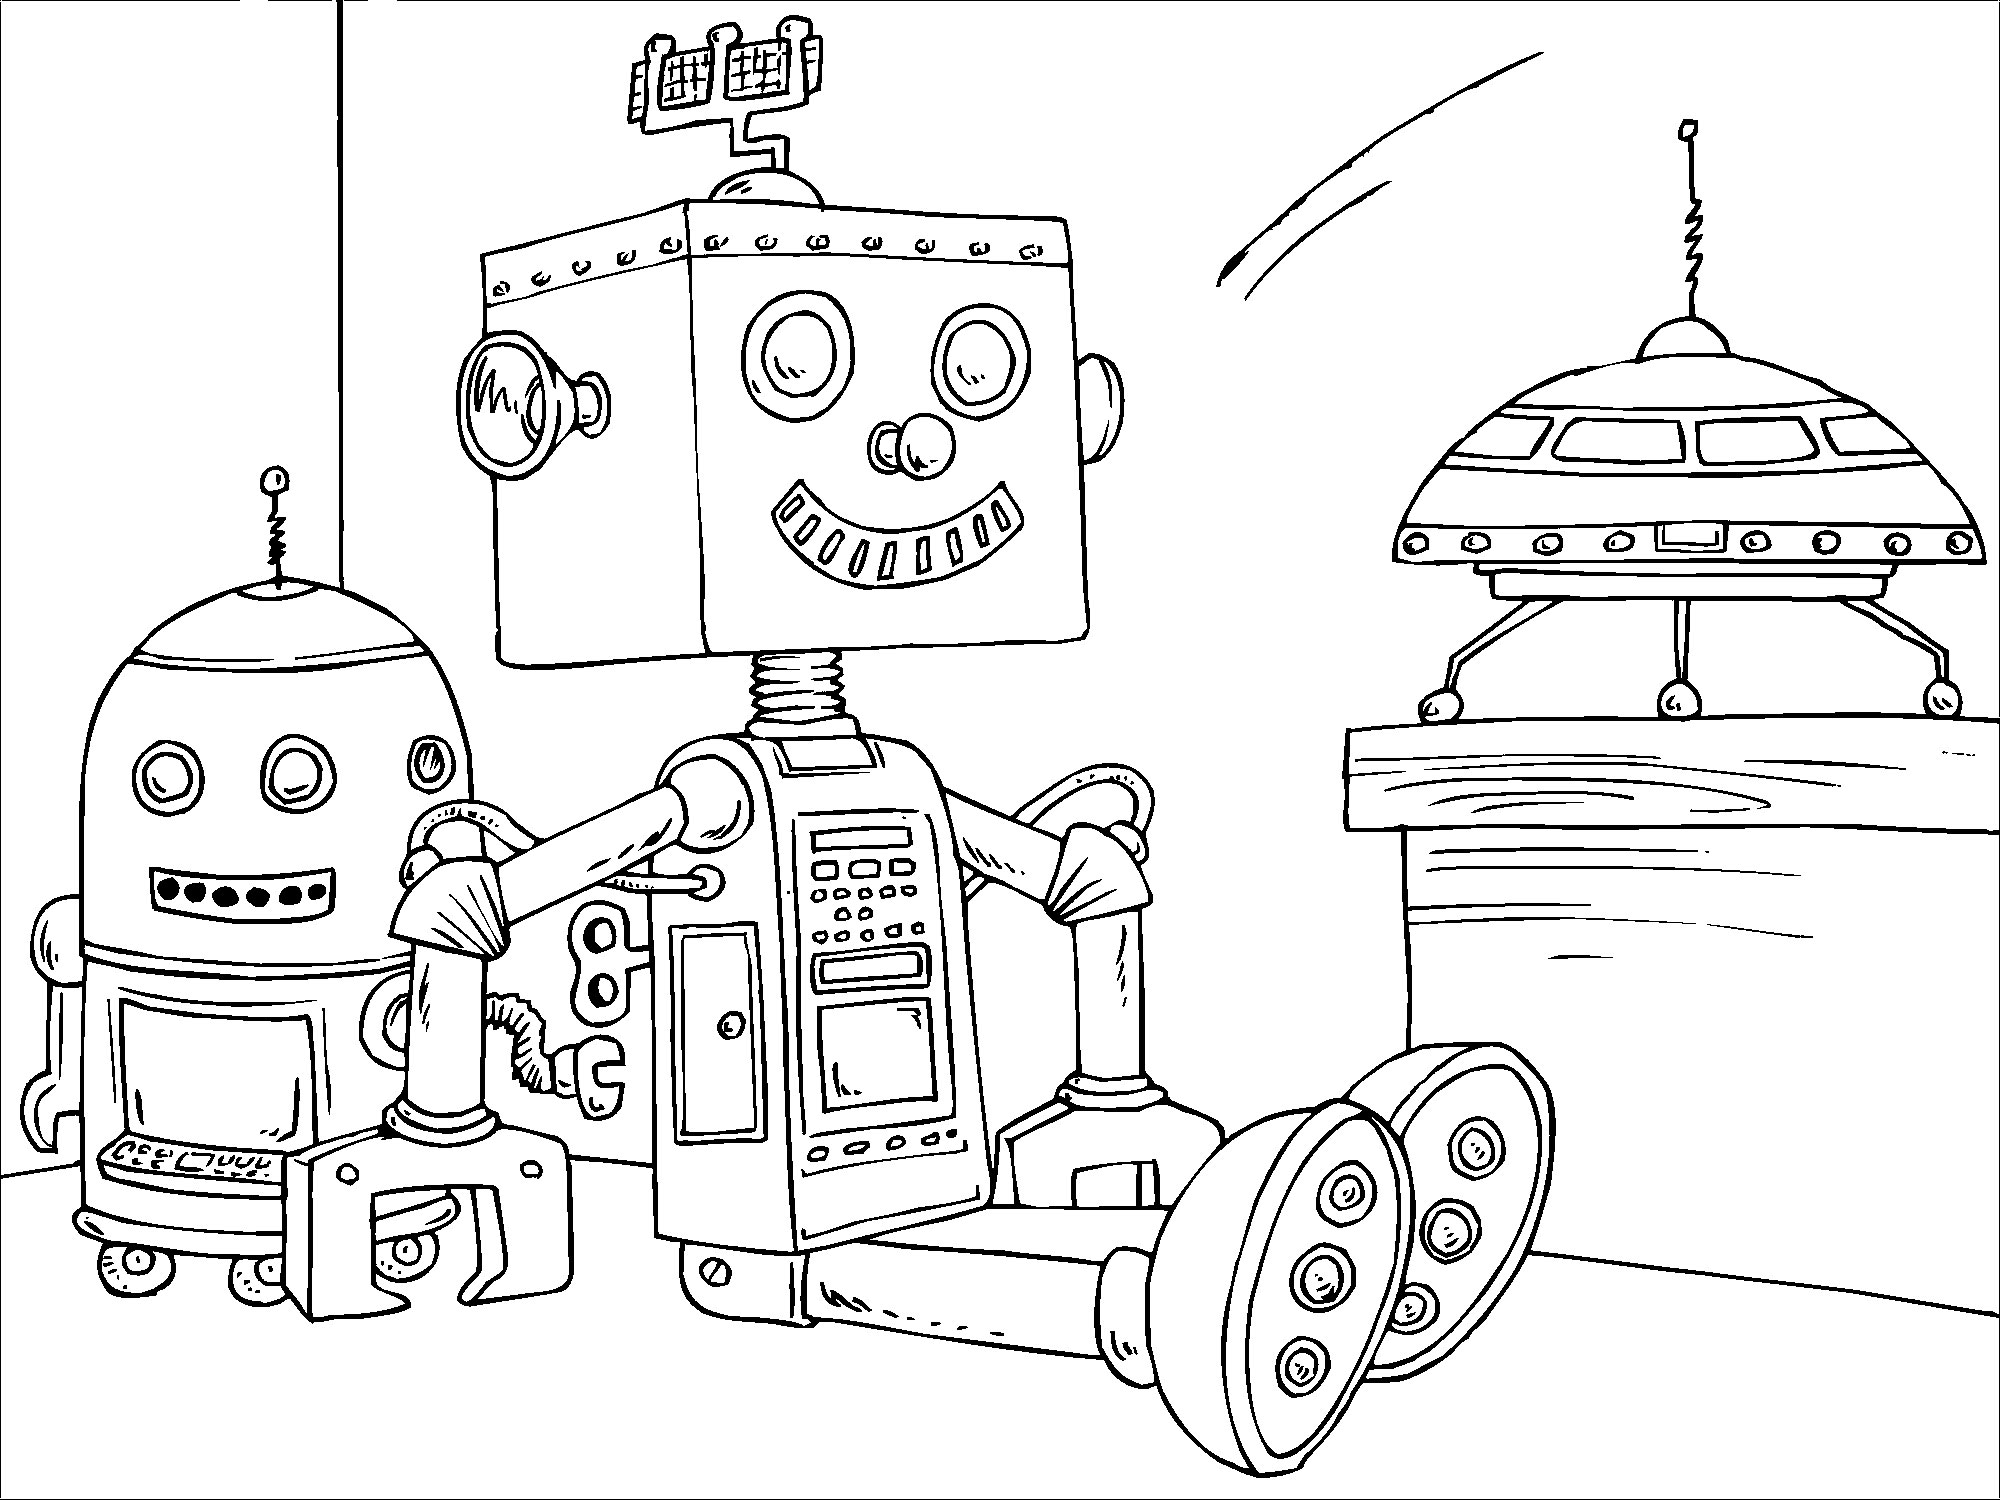 Free Printable Robot Coloring Pages For Kids Coloring Pages Robots